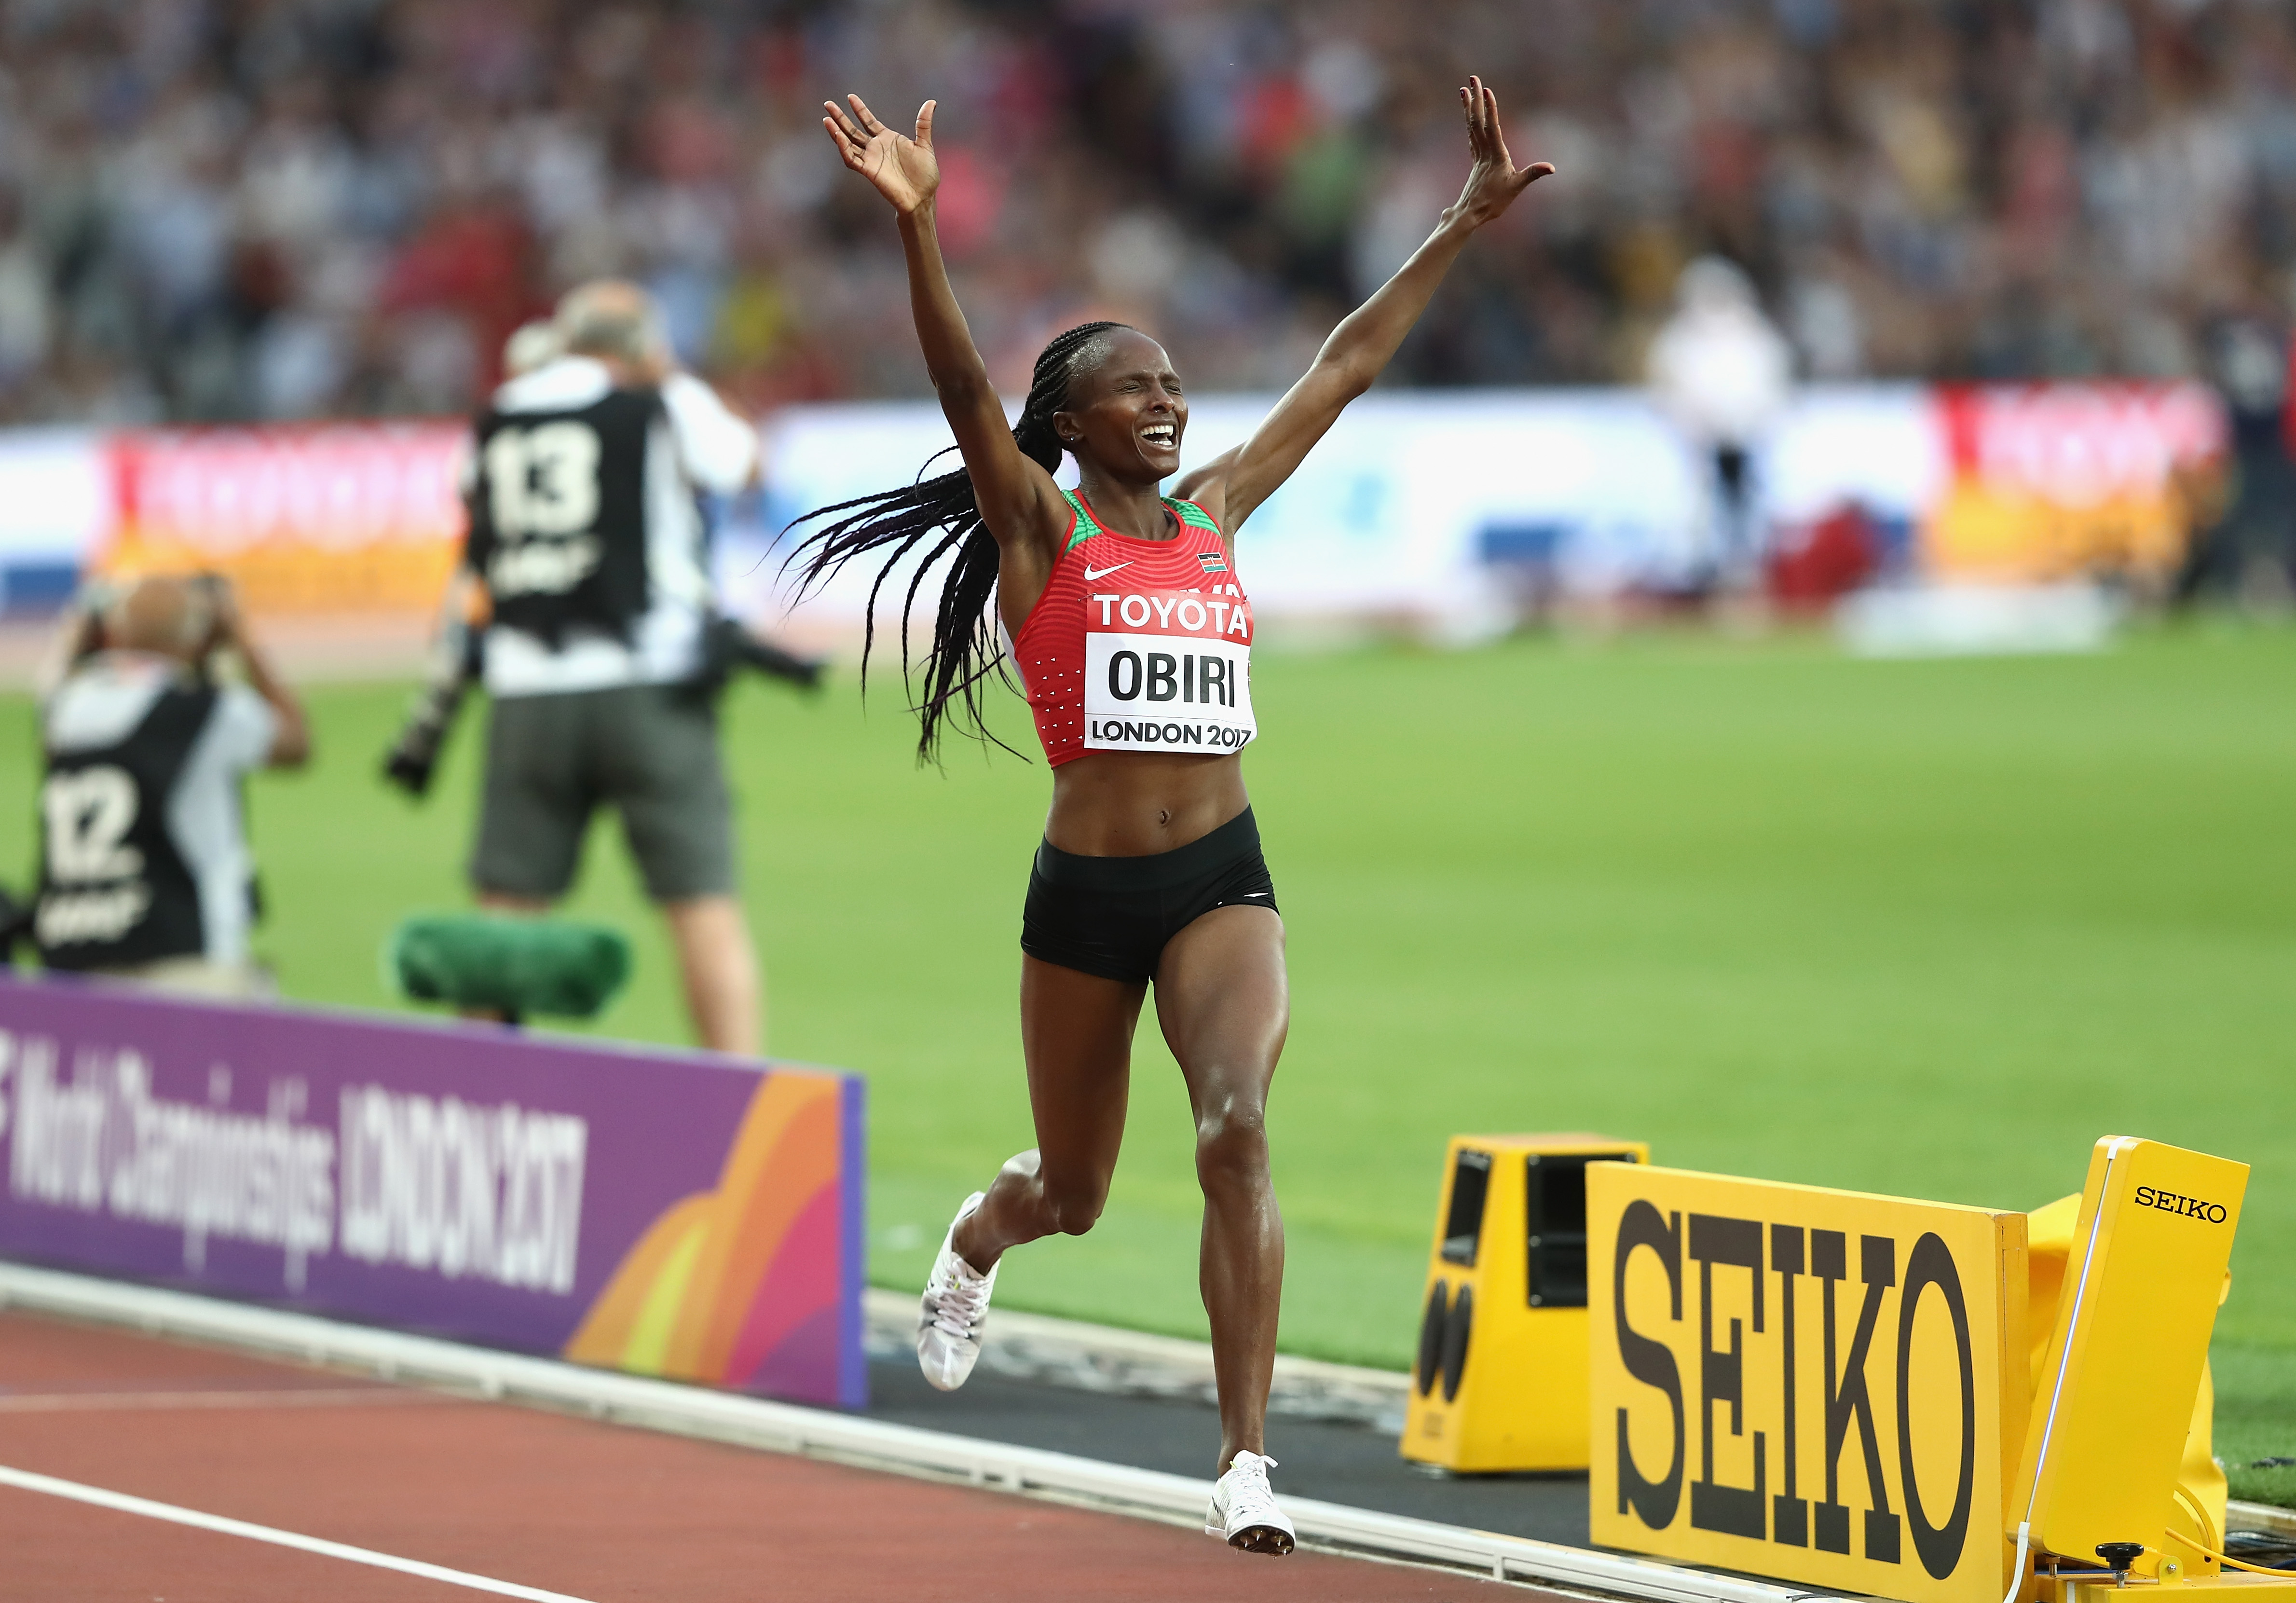 LONDON, ENGLAND - AUGUST 13:  Hellen Onsando Obiri of Kenya crosses the finish line to win gold in the Women's 5000 metres final during day ten of the 16th IAAF World Athletics Championships London 2017 at The London Stadium on August 13, 2017 in London, United Kingdom.  (Photo by Alexander Hassenstein/Getty Images for IAAF)